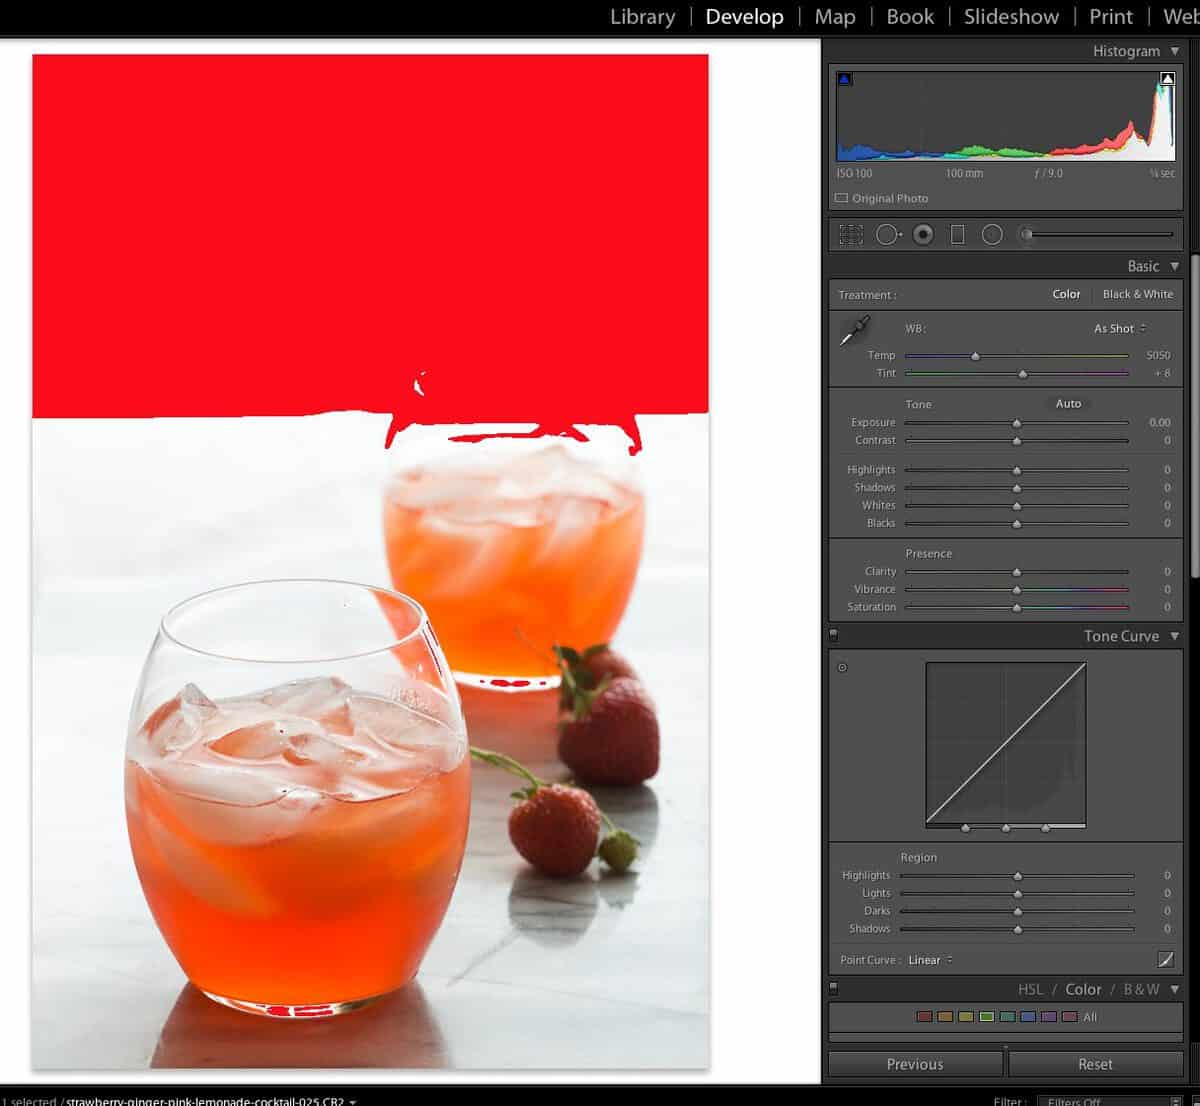 clipped highlights | overexposed highlights in food photogrpahy | how to backlight in food photography